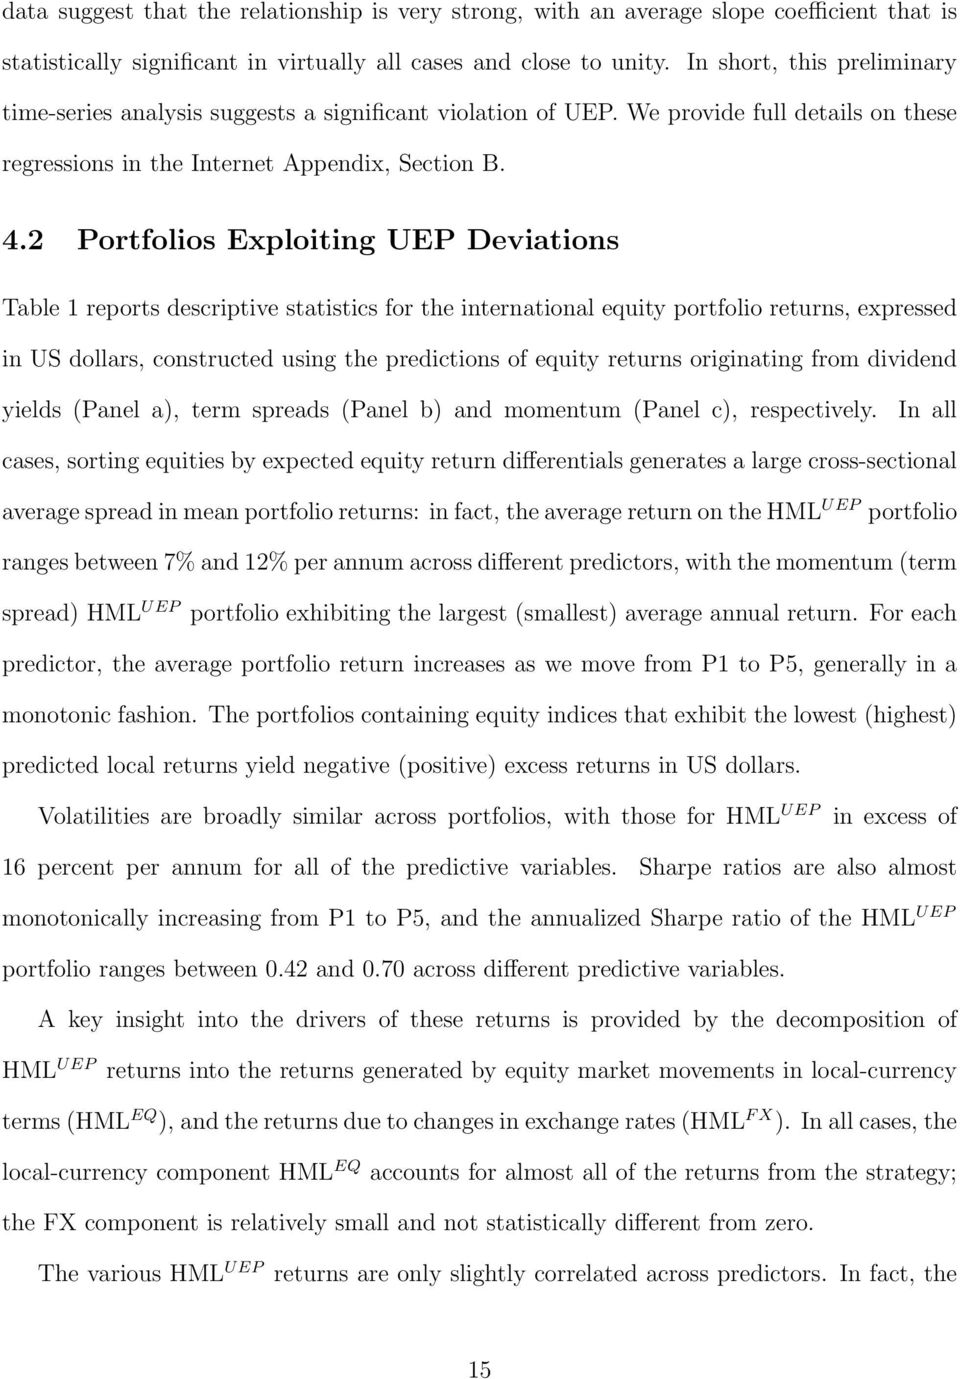 2 Portfolios Exploiting UEP Deviations Table 1 reports descriptive statistics for the international equity portfolio returns, expressed in US dollars, constructed using the predictions of equity